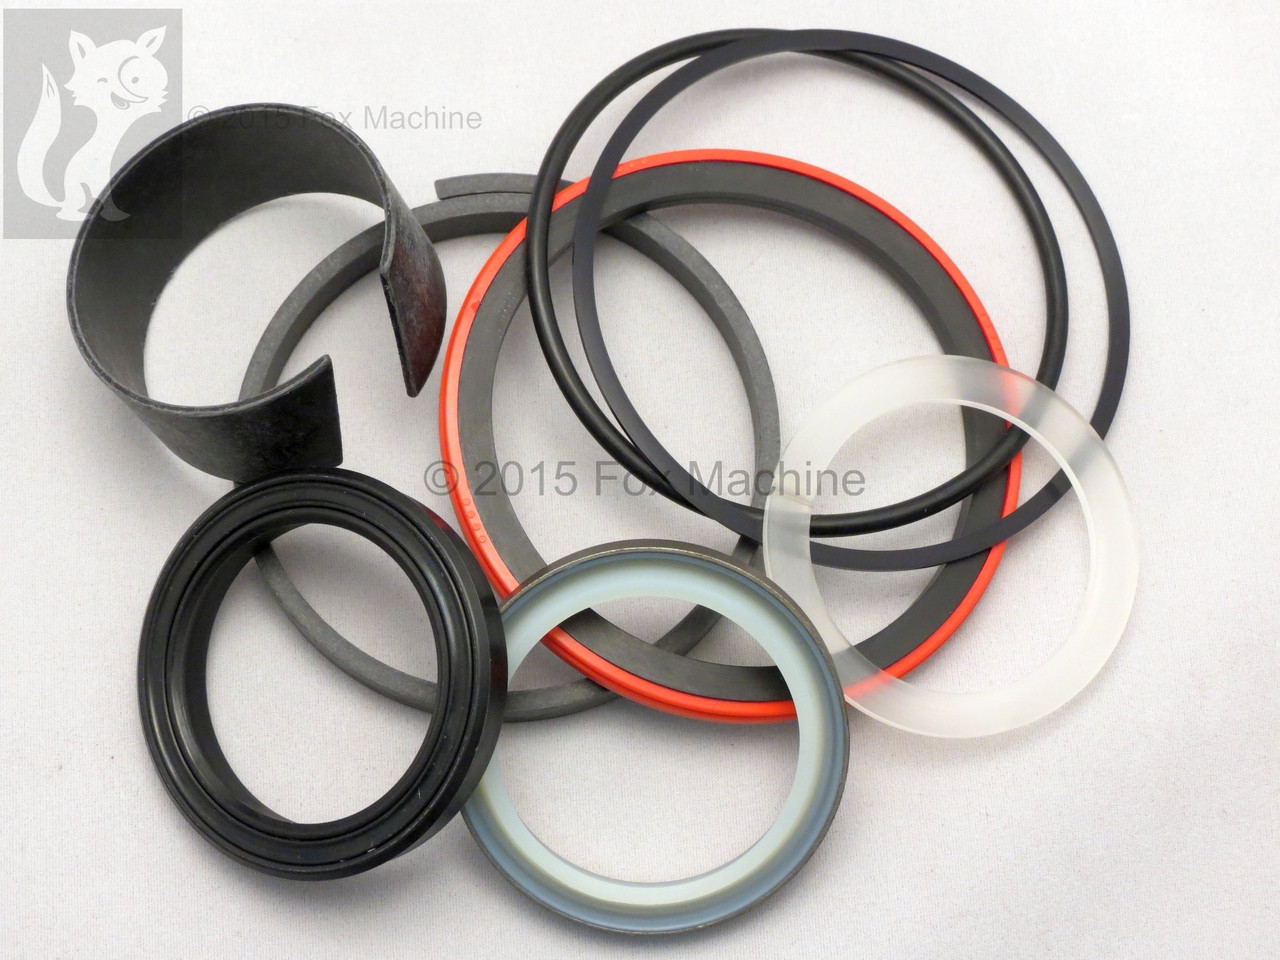 Hydraulic Seal Kit for Case 580K Swing Cylinder 3-1/2